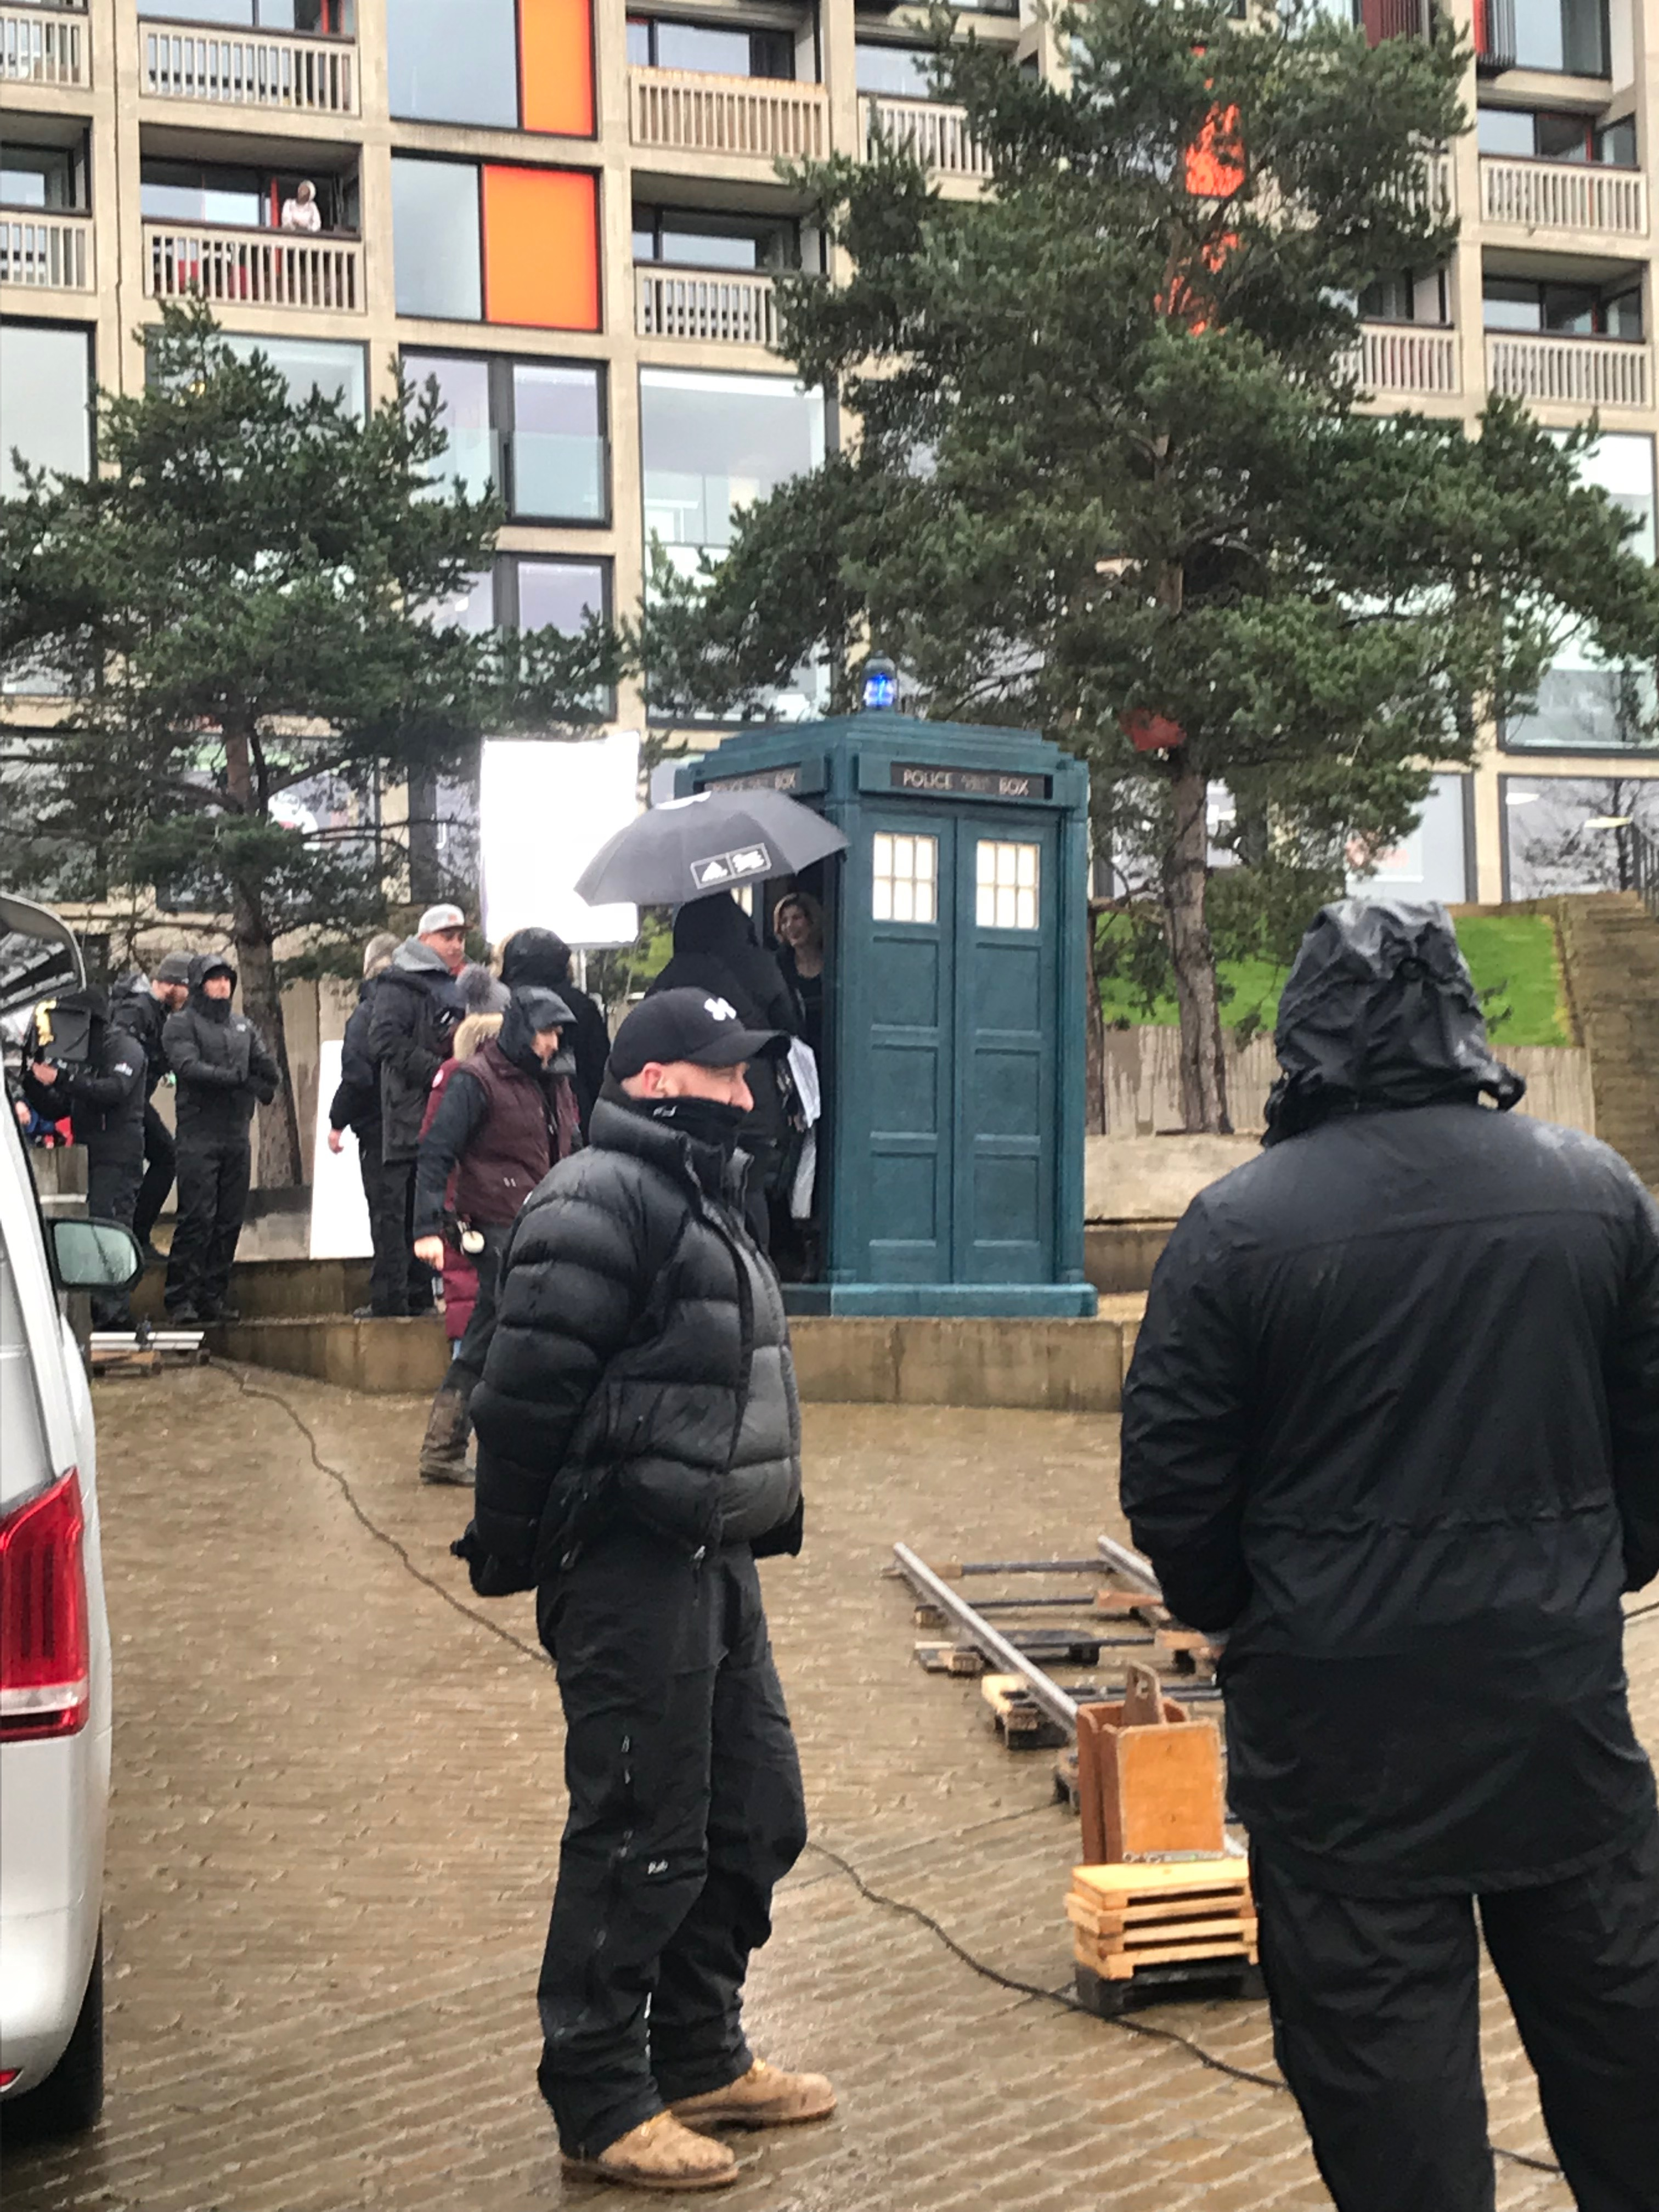 doctor-who-filming-sheffield-2018_26374534848_o